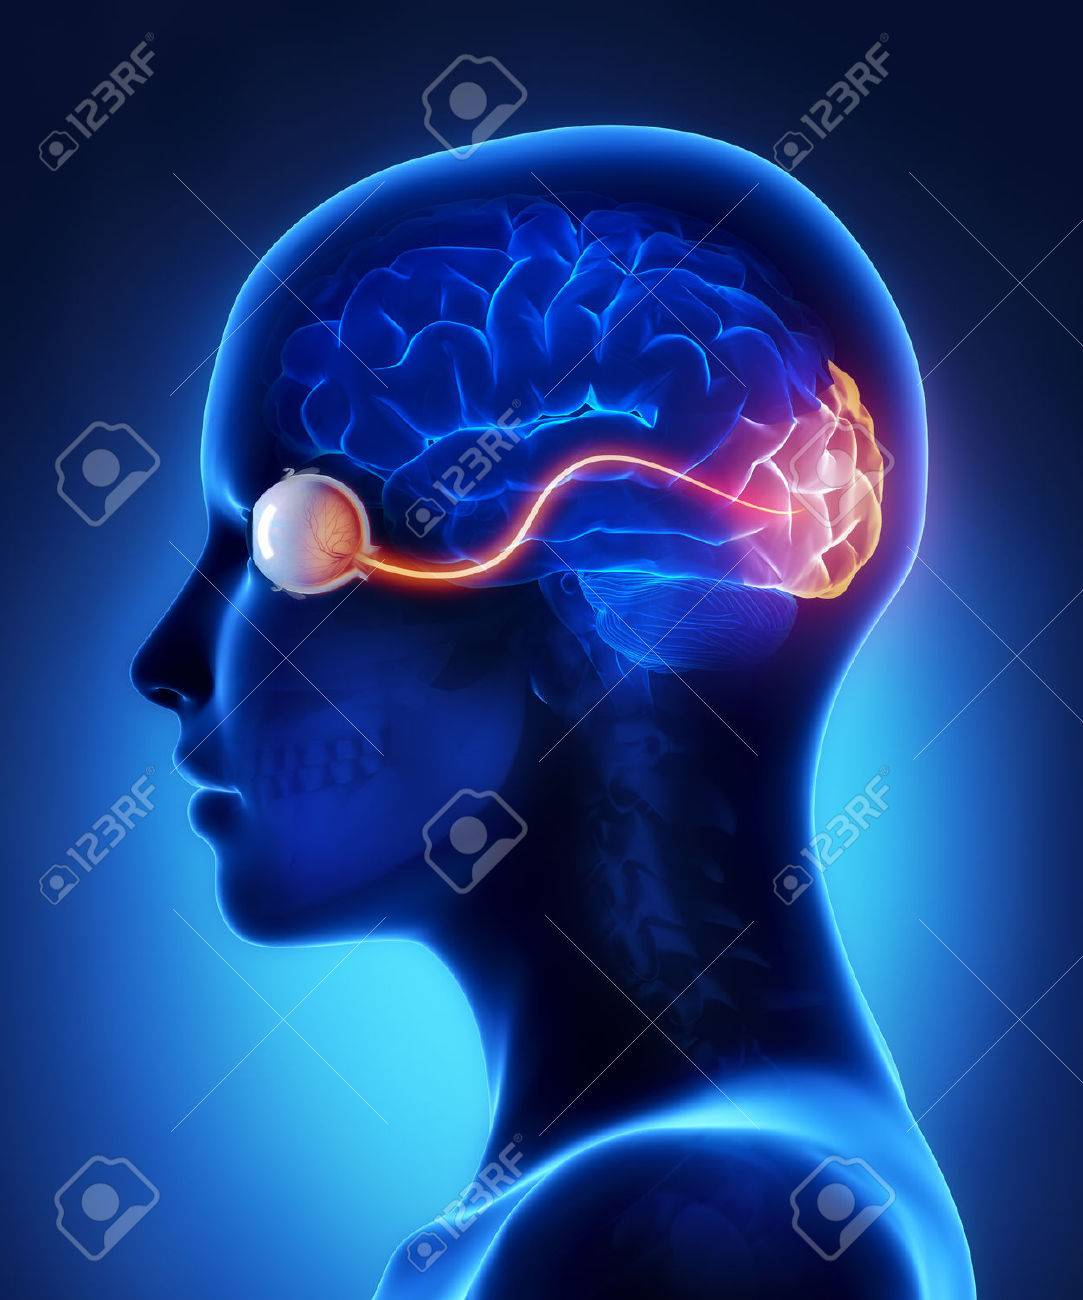 Eye And Visual Cortex Nerves Stock Photo, Picture And Royalty Free ...